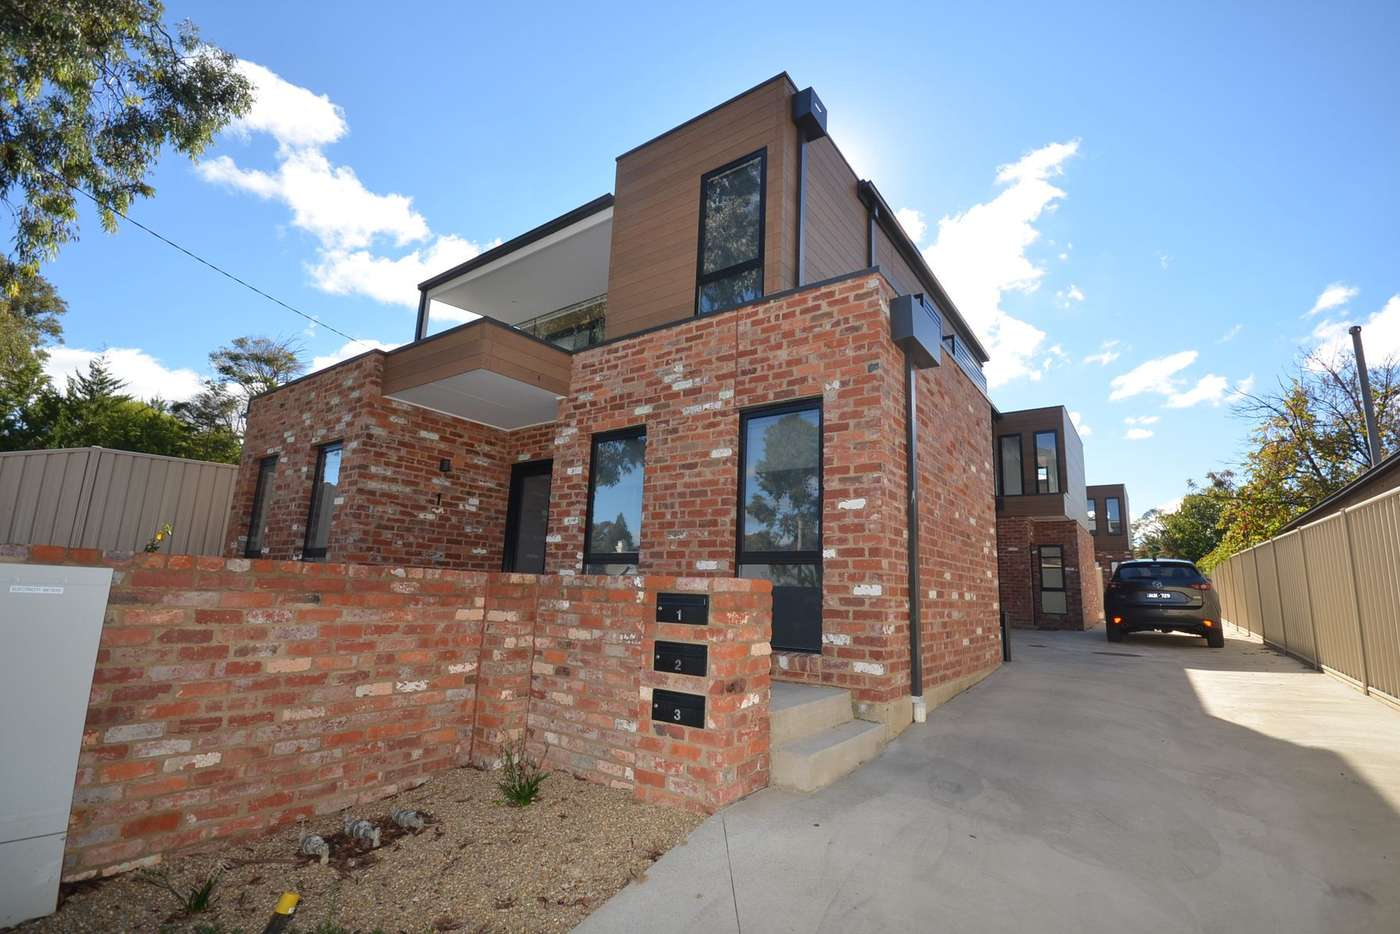 Main view of Homely house listing, 1/164 Arnold Street, Bendigo VIC 3550